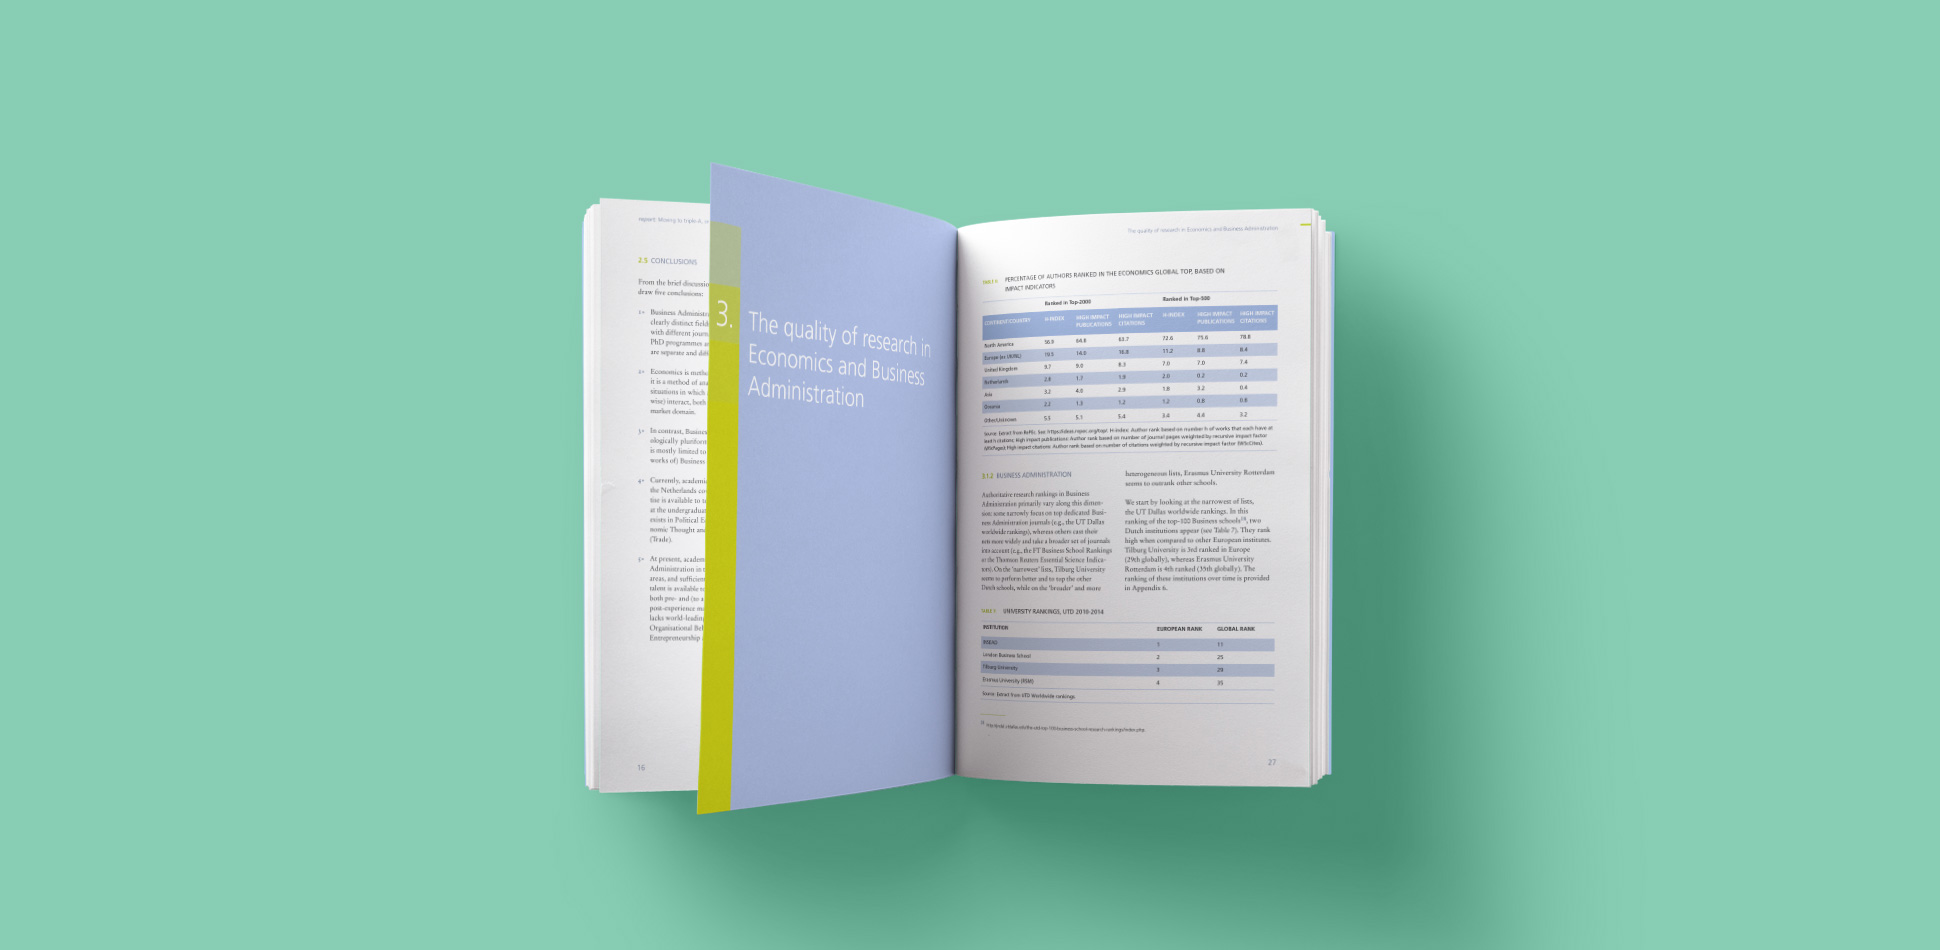 nothingblank-graphic-design-book-page-uva